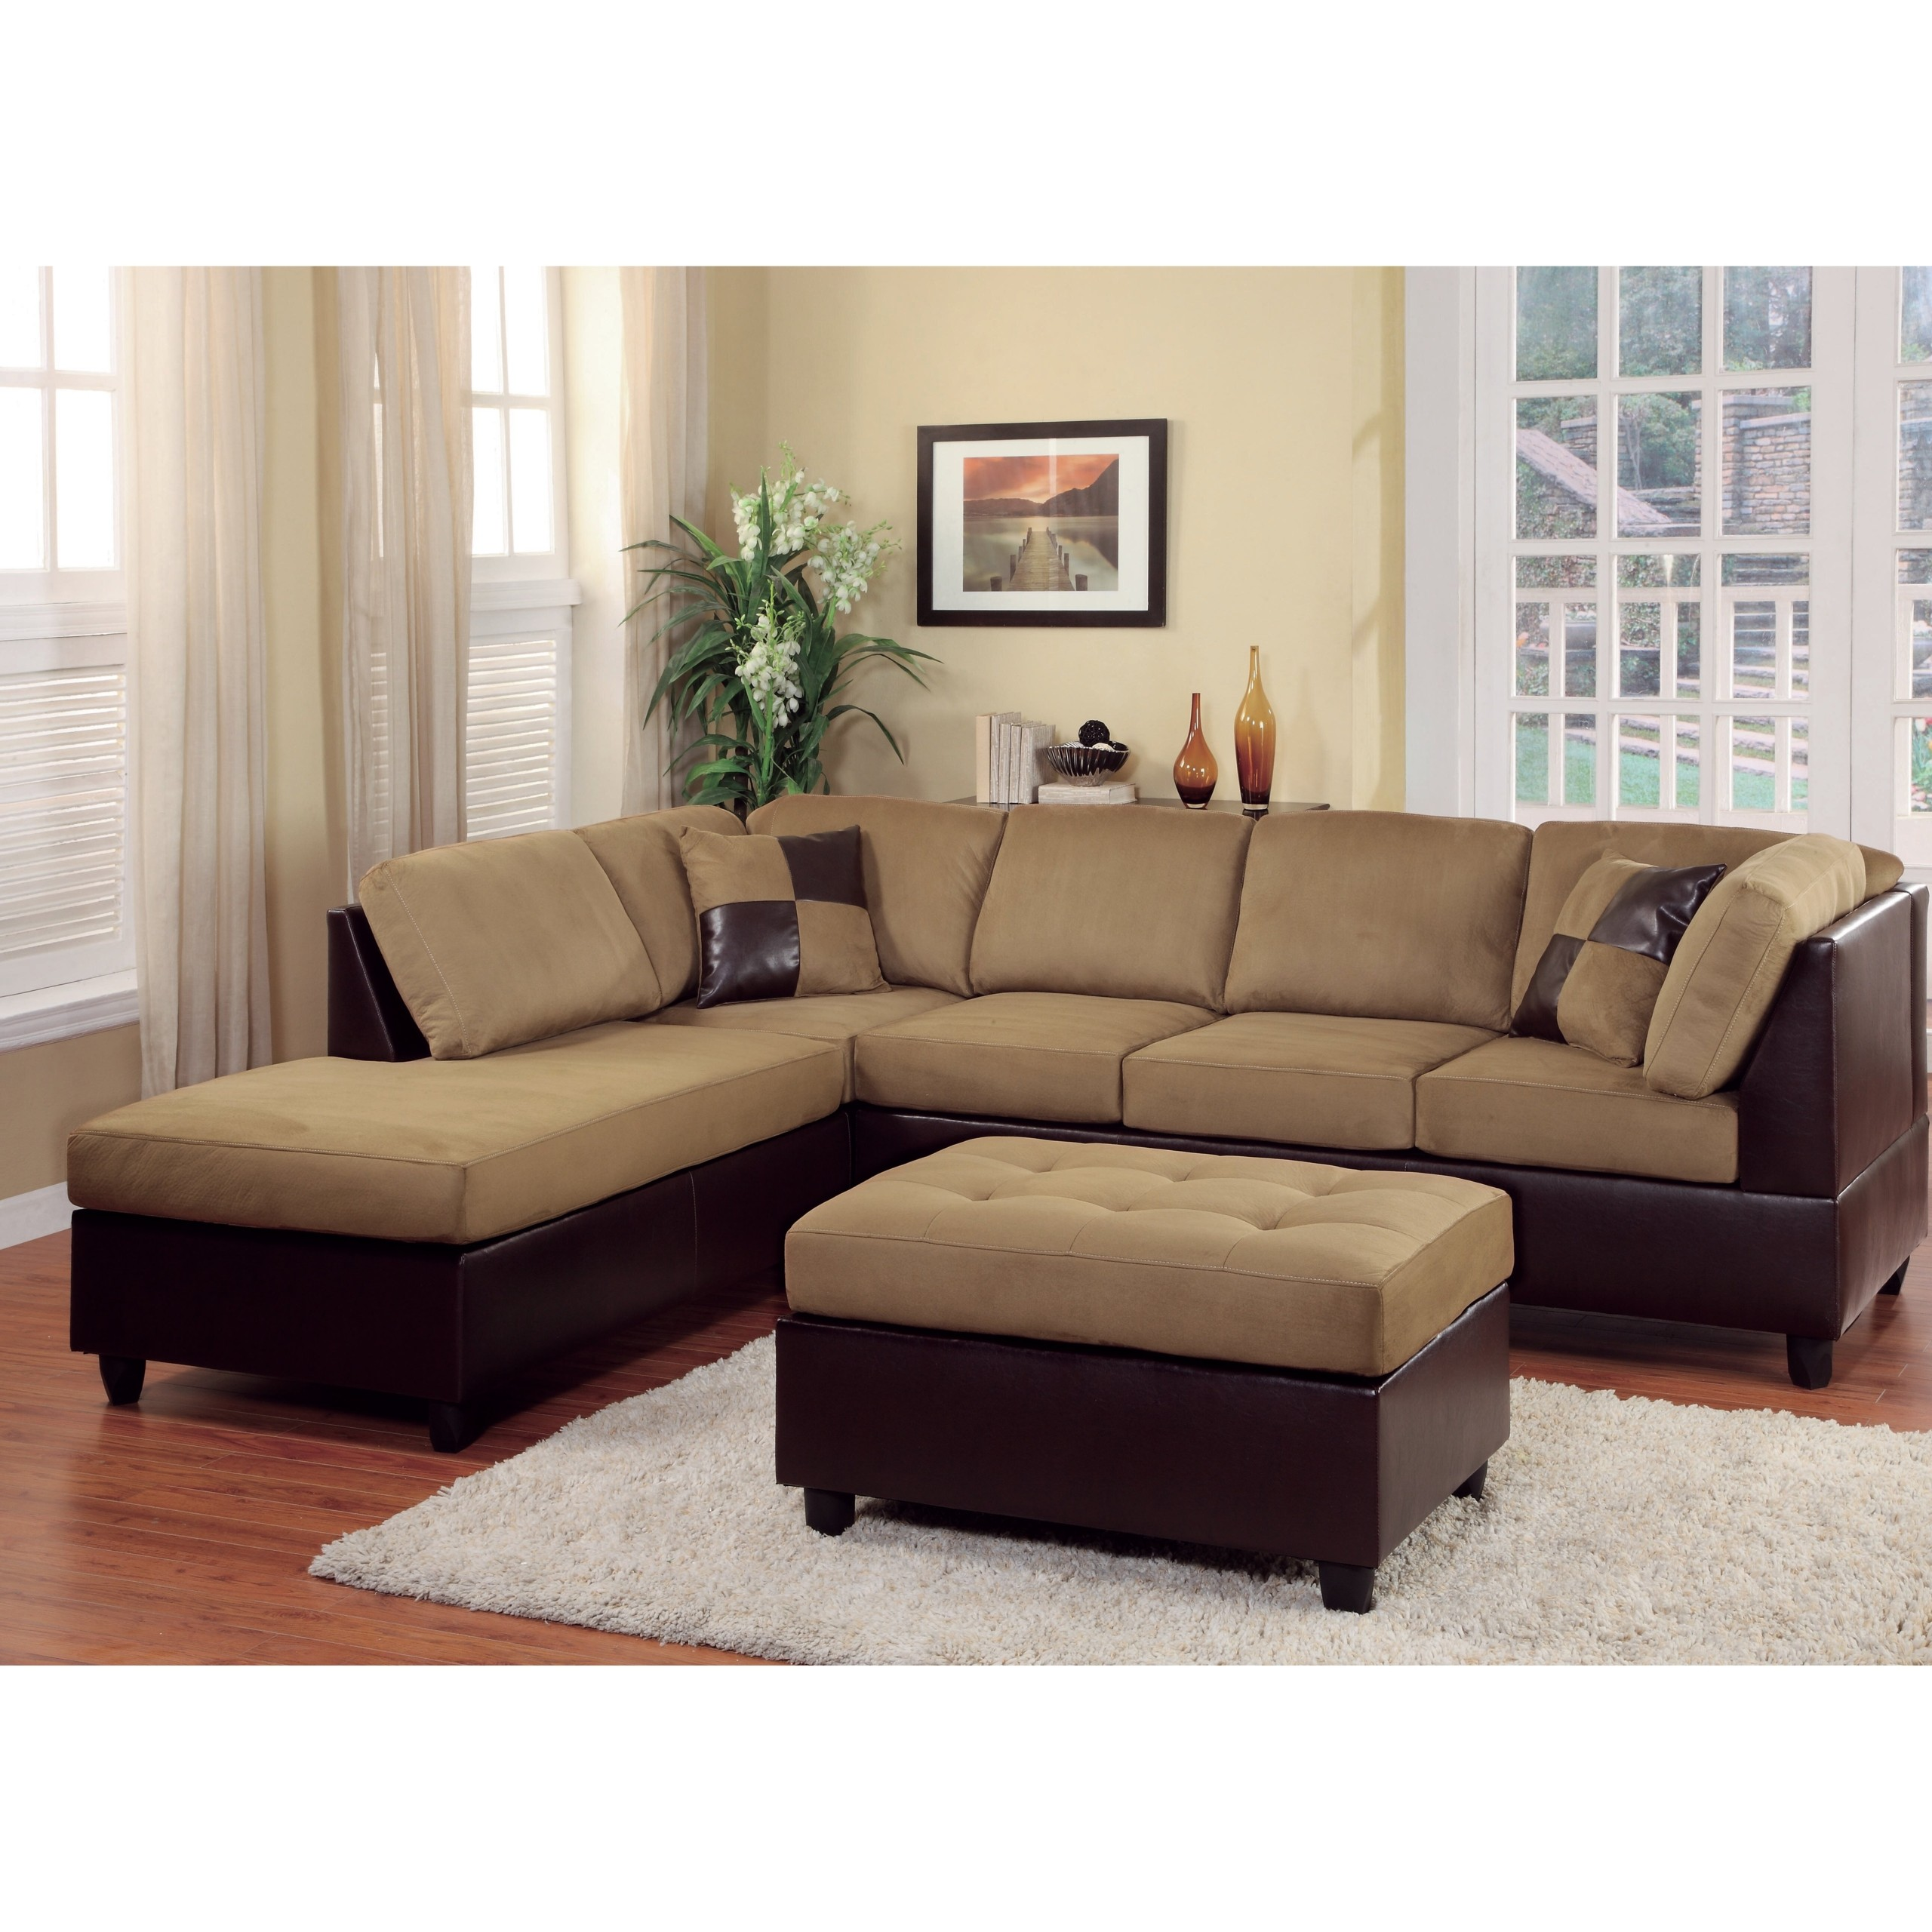 Leather And Fabric Sectional Sofa In Family Room